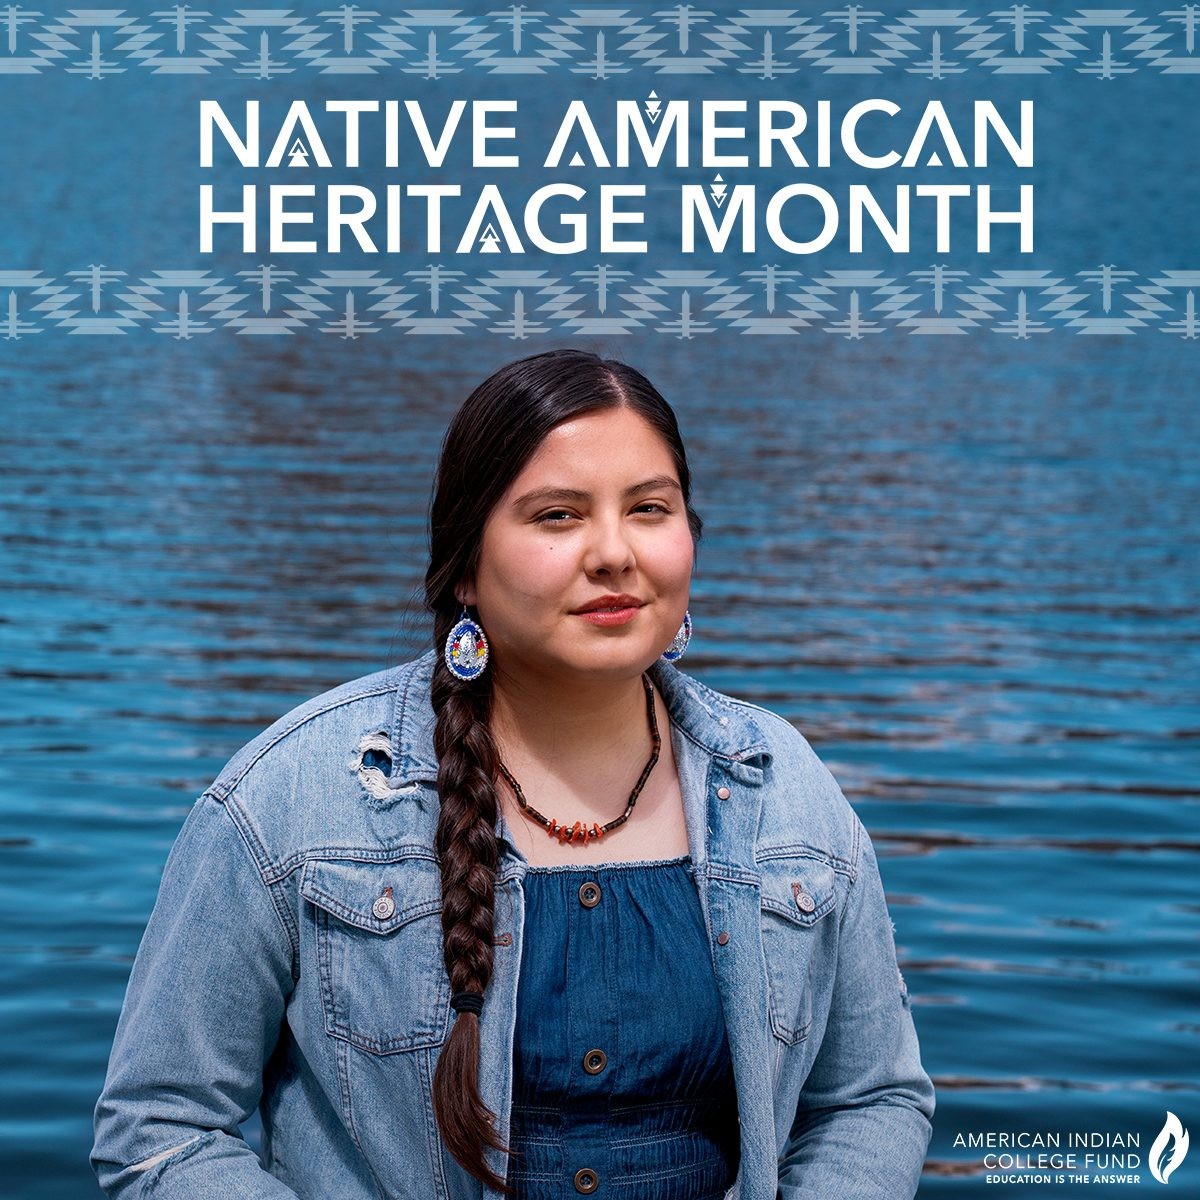 Native American Heritage Month - Share on Instagram 1